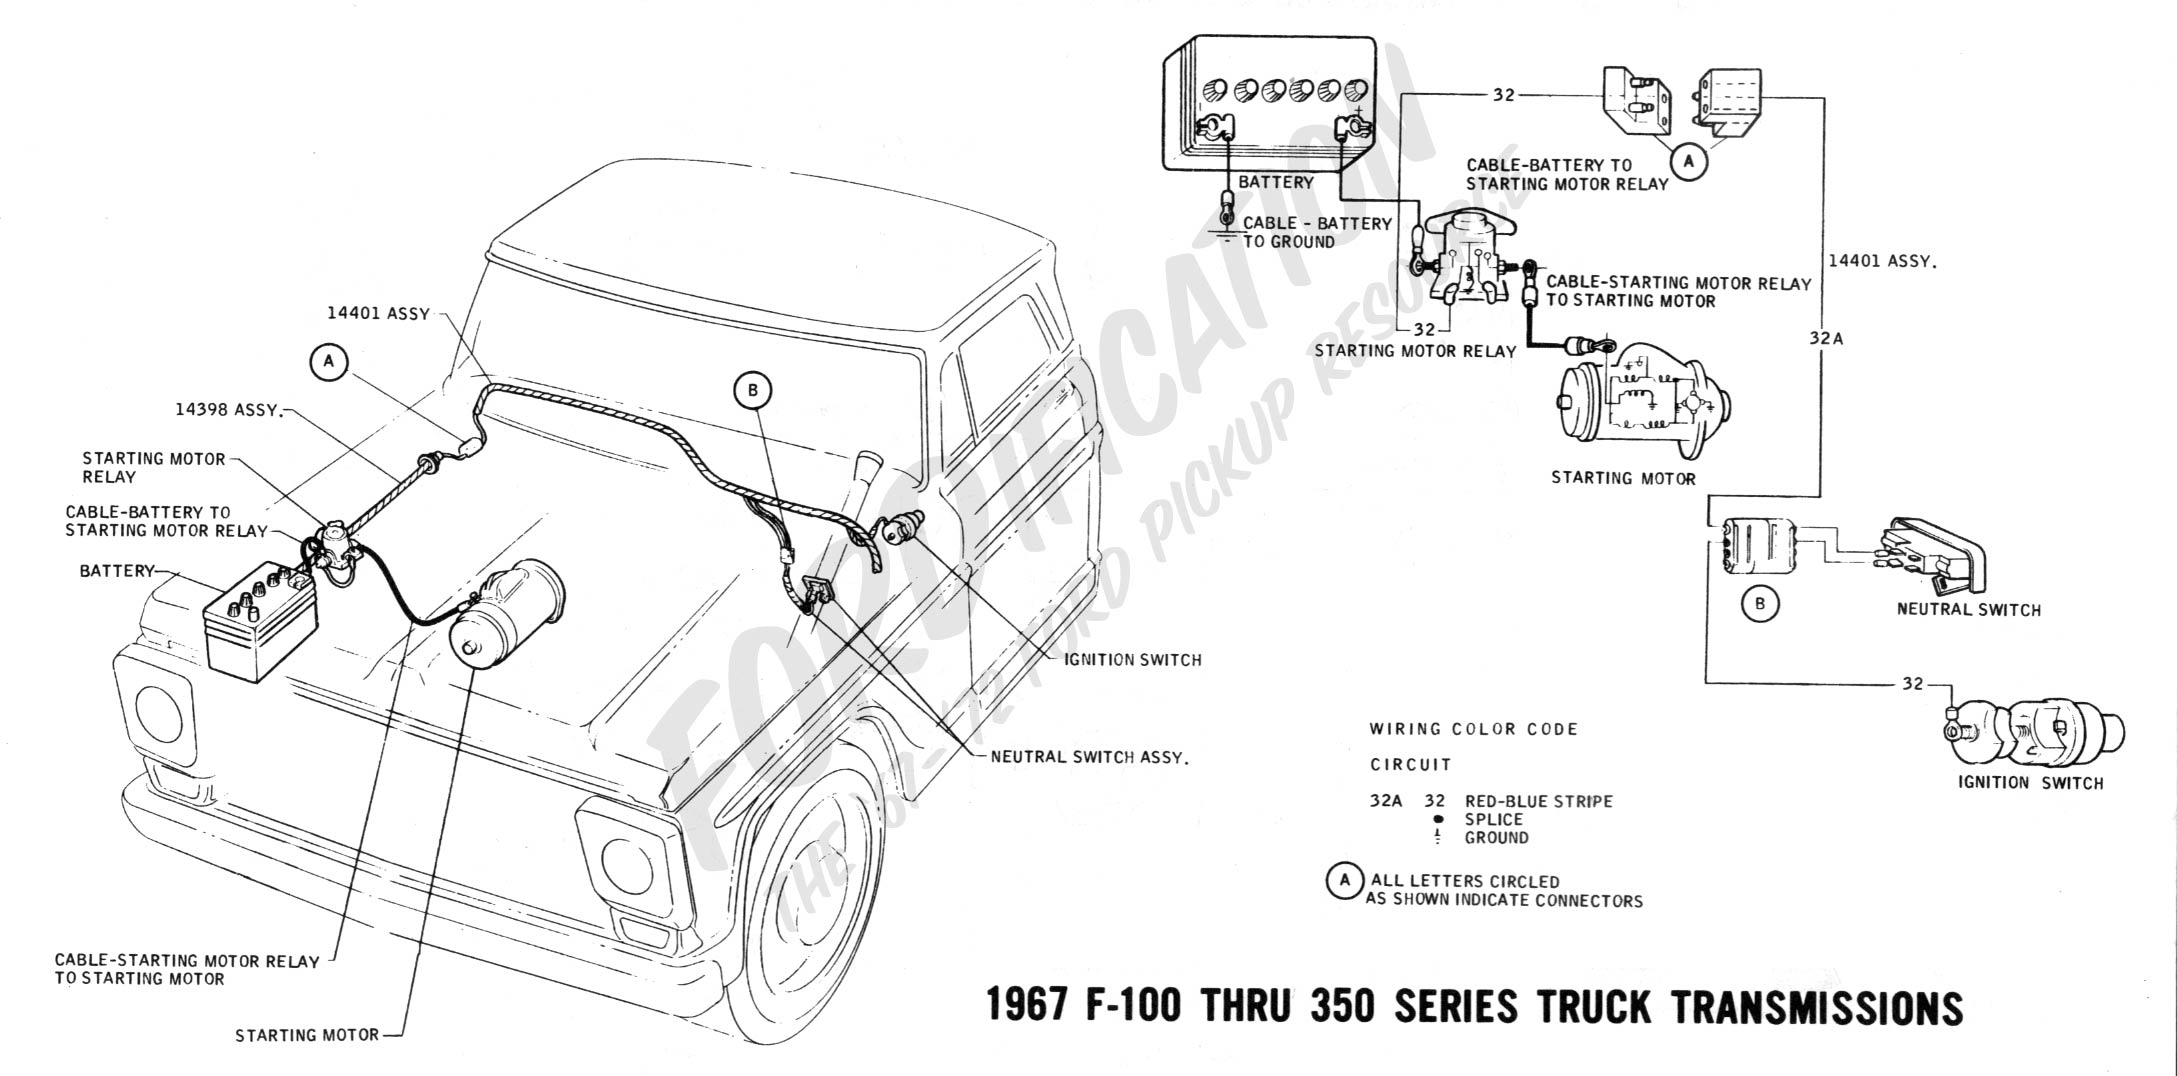 Ford Solenoid Wiring Diagram on chevy 350 starter wiring diagram, 1976 ford ignition wiring diagram, chevy alternator wiring diagram, f150 starter solenoid diagram, ford truck alternator wiring diagram, 1990 ford alternator wiring diagram, ford starter solenoid diagram, quadboss winch wiring diagram, onan 5000 generator wiring diagram, 1977 ford f-150 wiring diagram, 1993 ford alternator wiring diagram, f250 starter solenoid diagram, 1979 ford f100 wiring diagram, club car battery wiring diagram, ford f150 starter wiring diagram, 1989 ford alternator wiring diagram, ford ignition system wiring diagram, 12 volt starter wiring diagram, 82 f150 wiring diagram, 1976 ford truck alternator diagram,